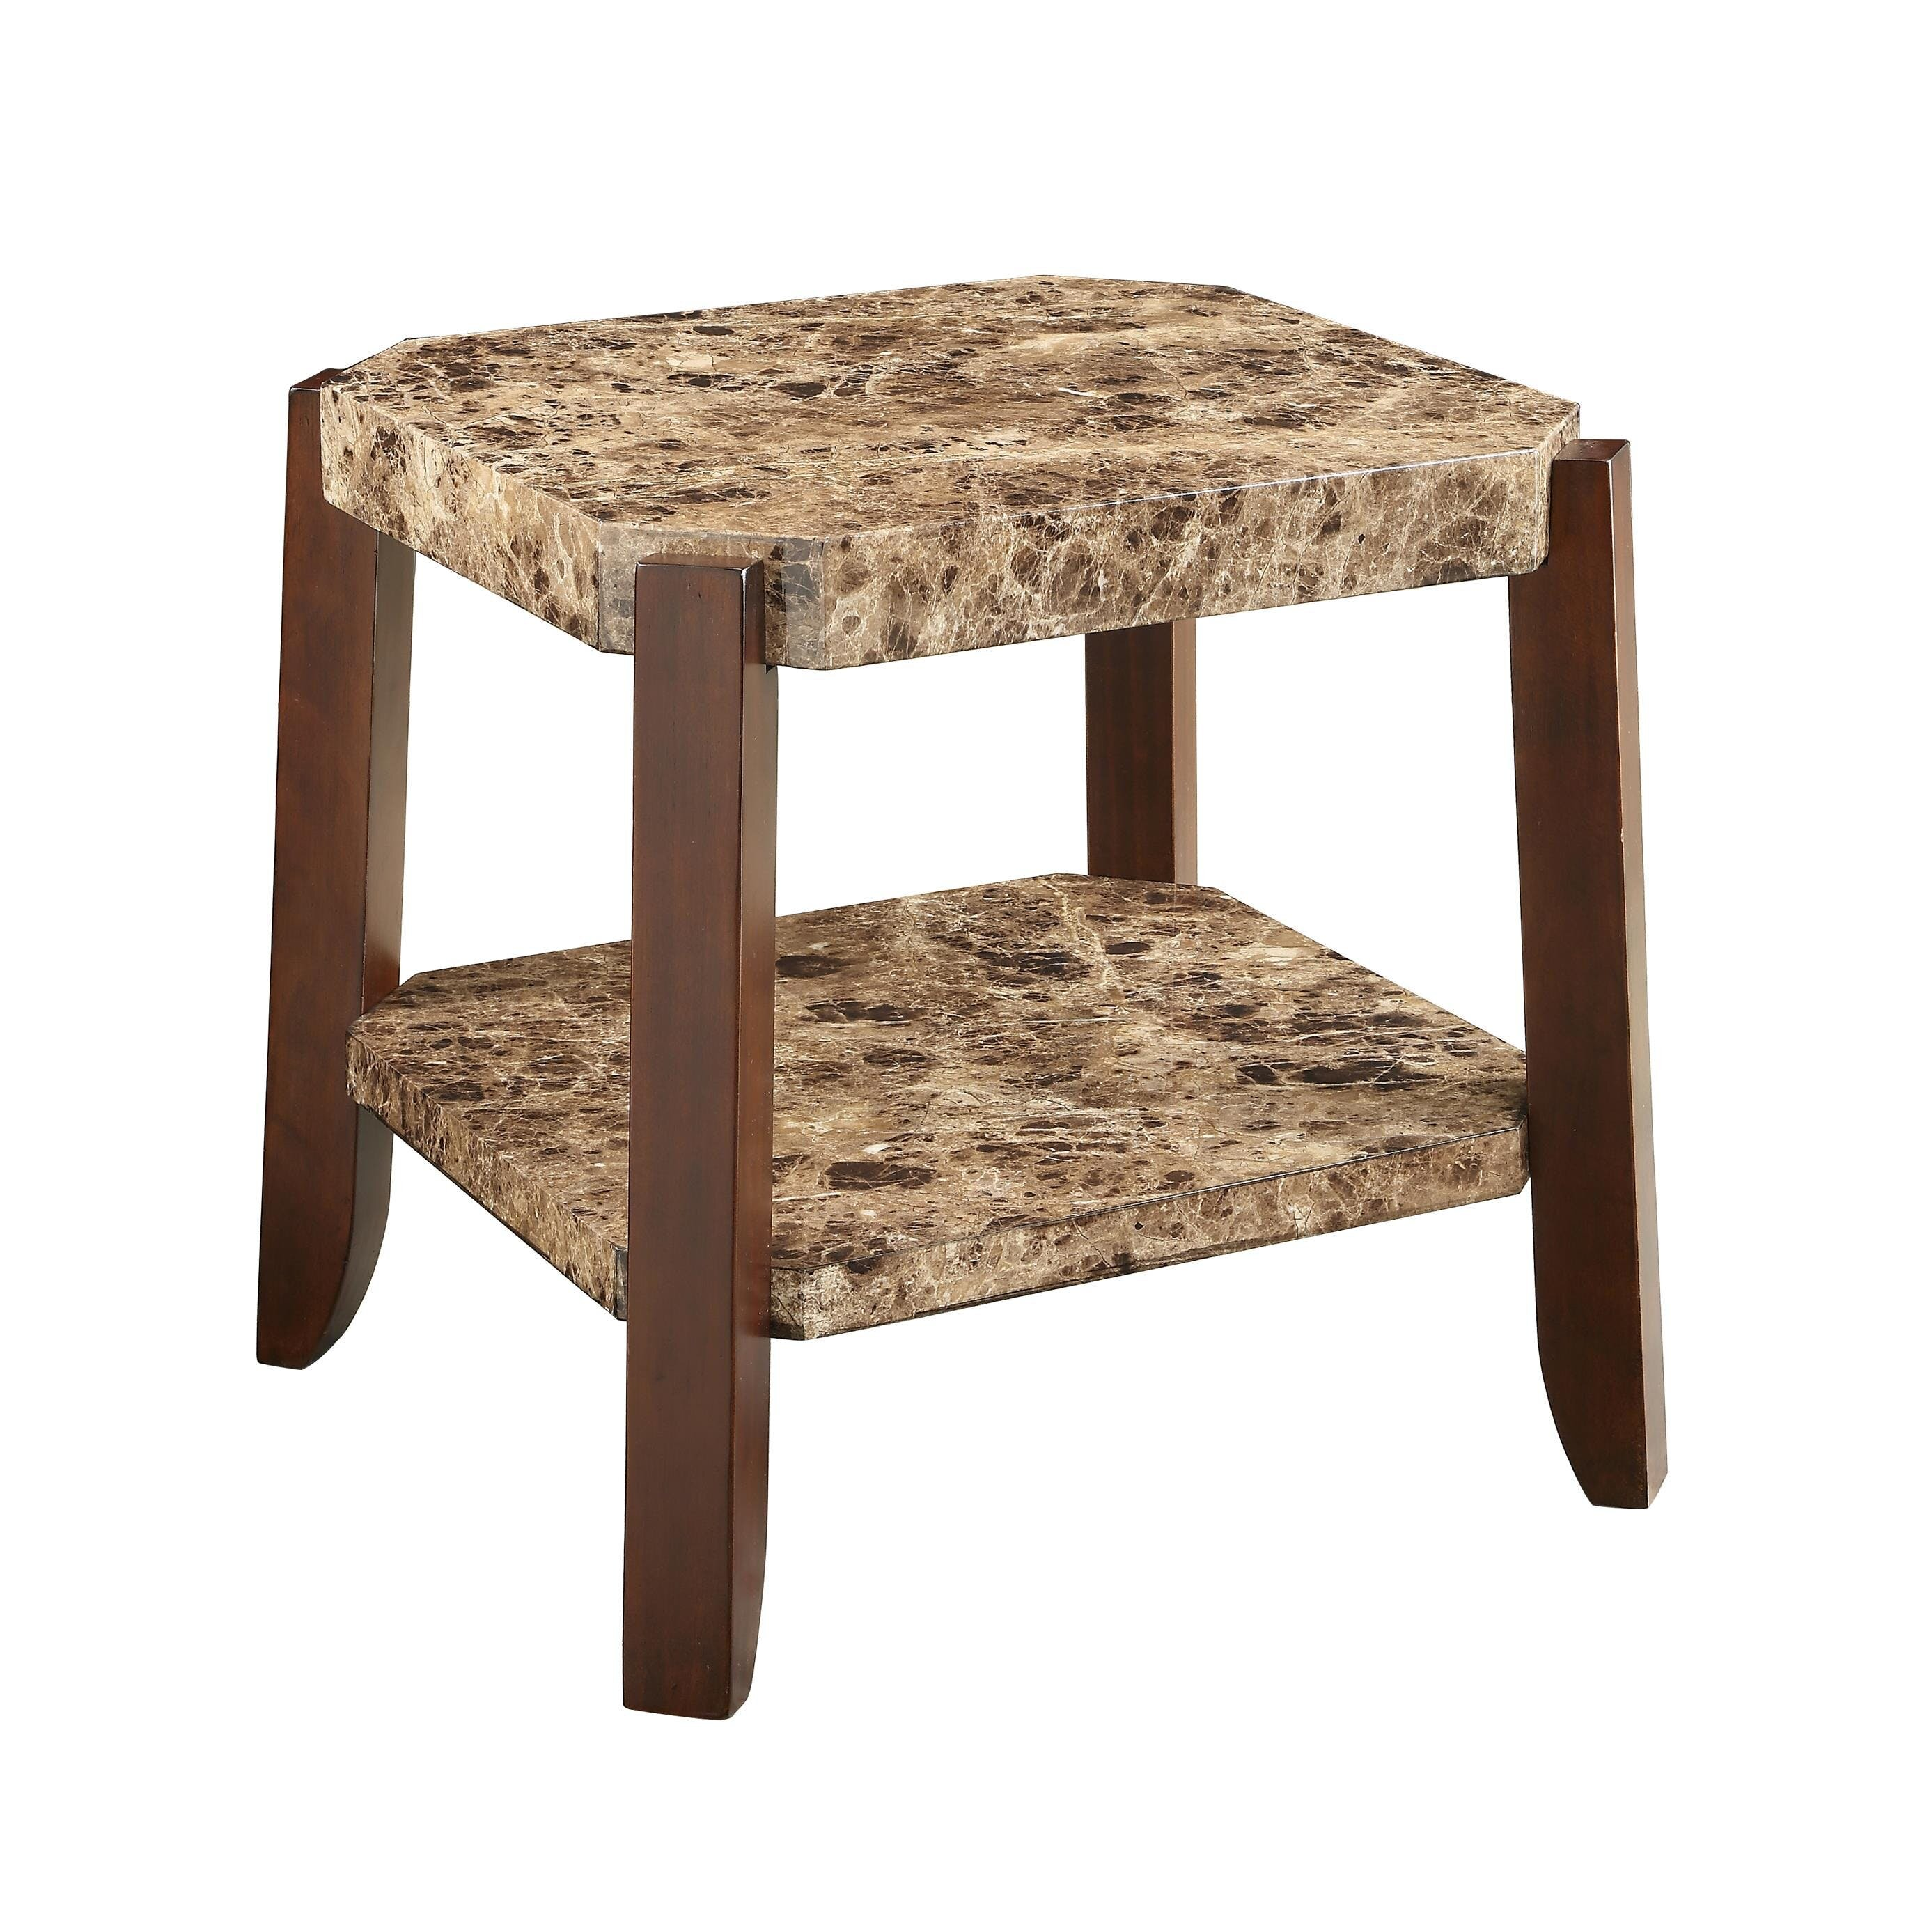 Awesome Matias Marble Top And Bottom Shelf Wooden End Table Short Links Chair Design For Home Short Linksinfo